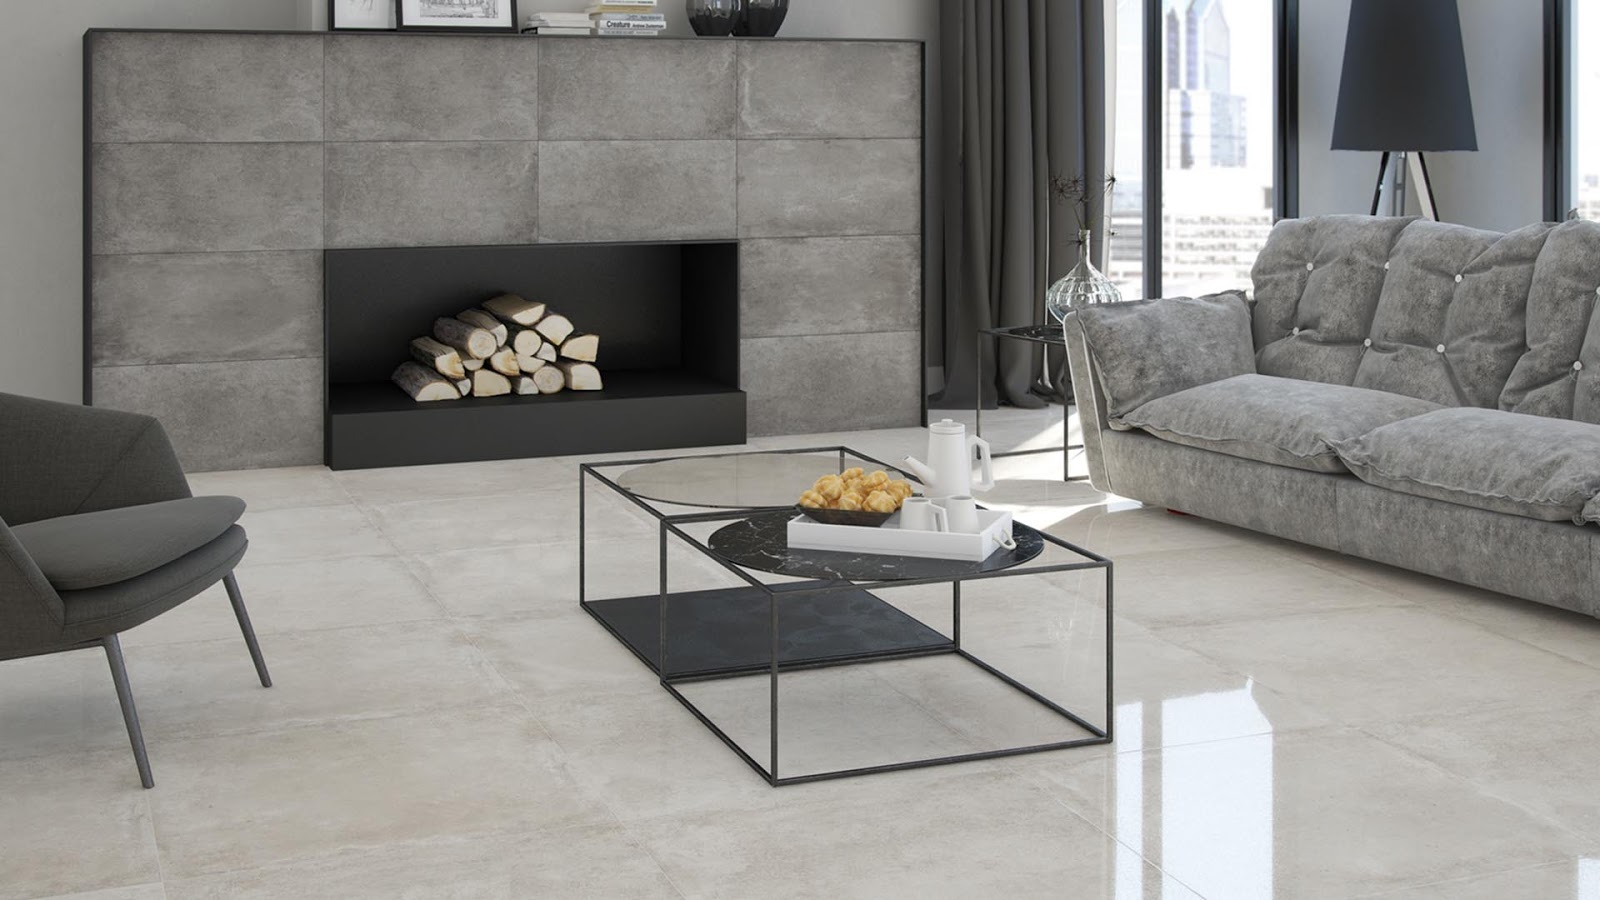 Home tiles design with friendlytile of Argenta Ceramica | Floor ...